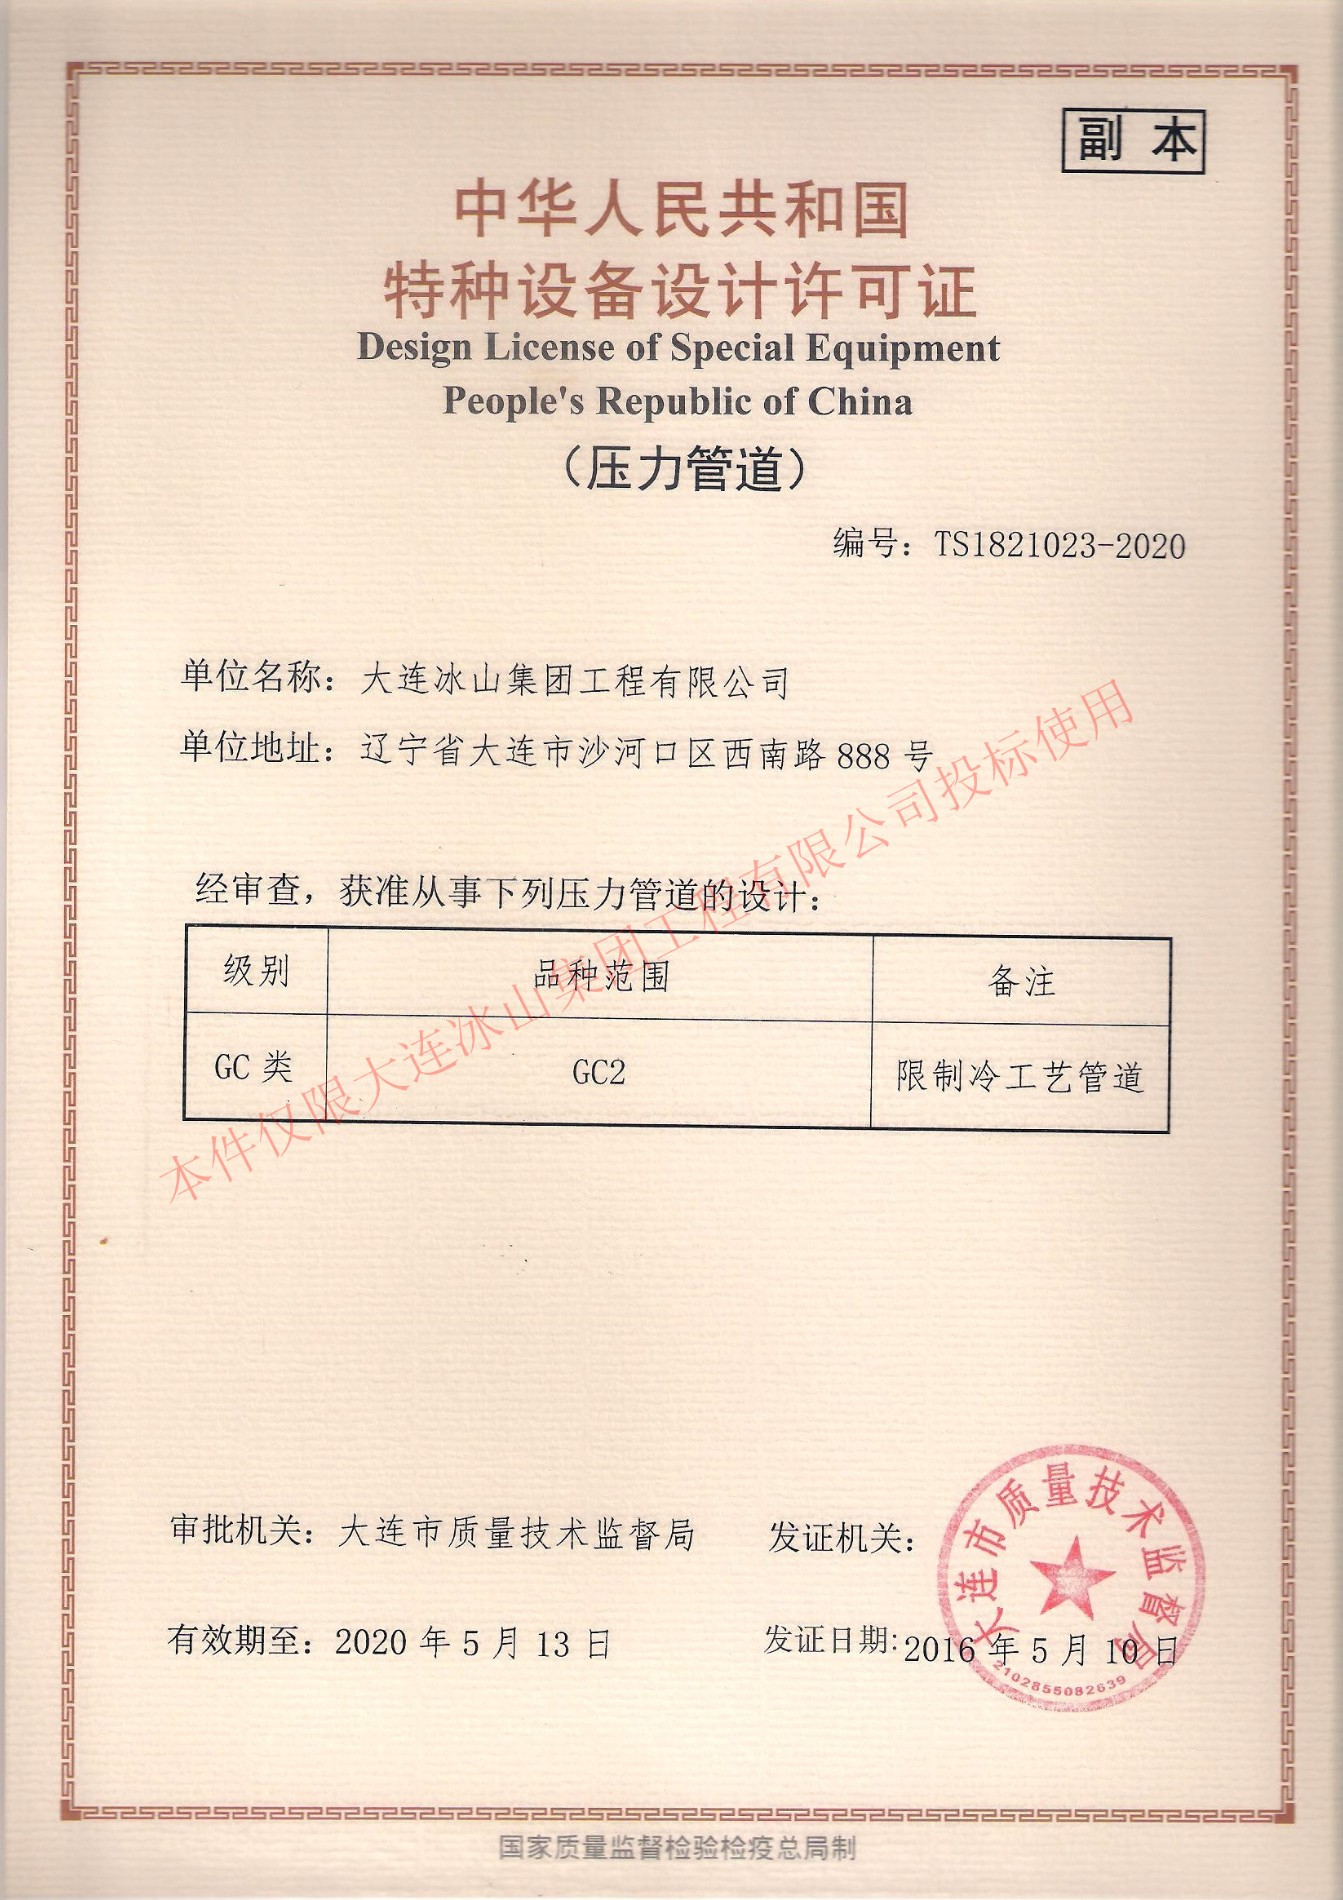 Design License lf Special Equipment People's Republic of China